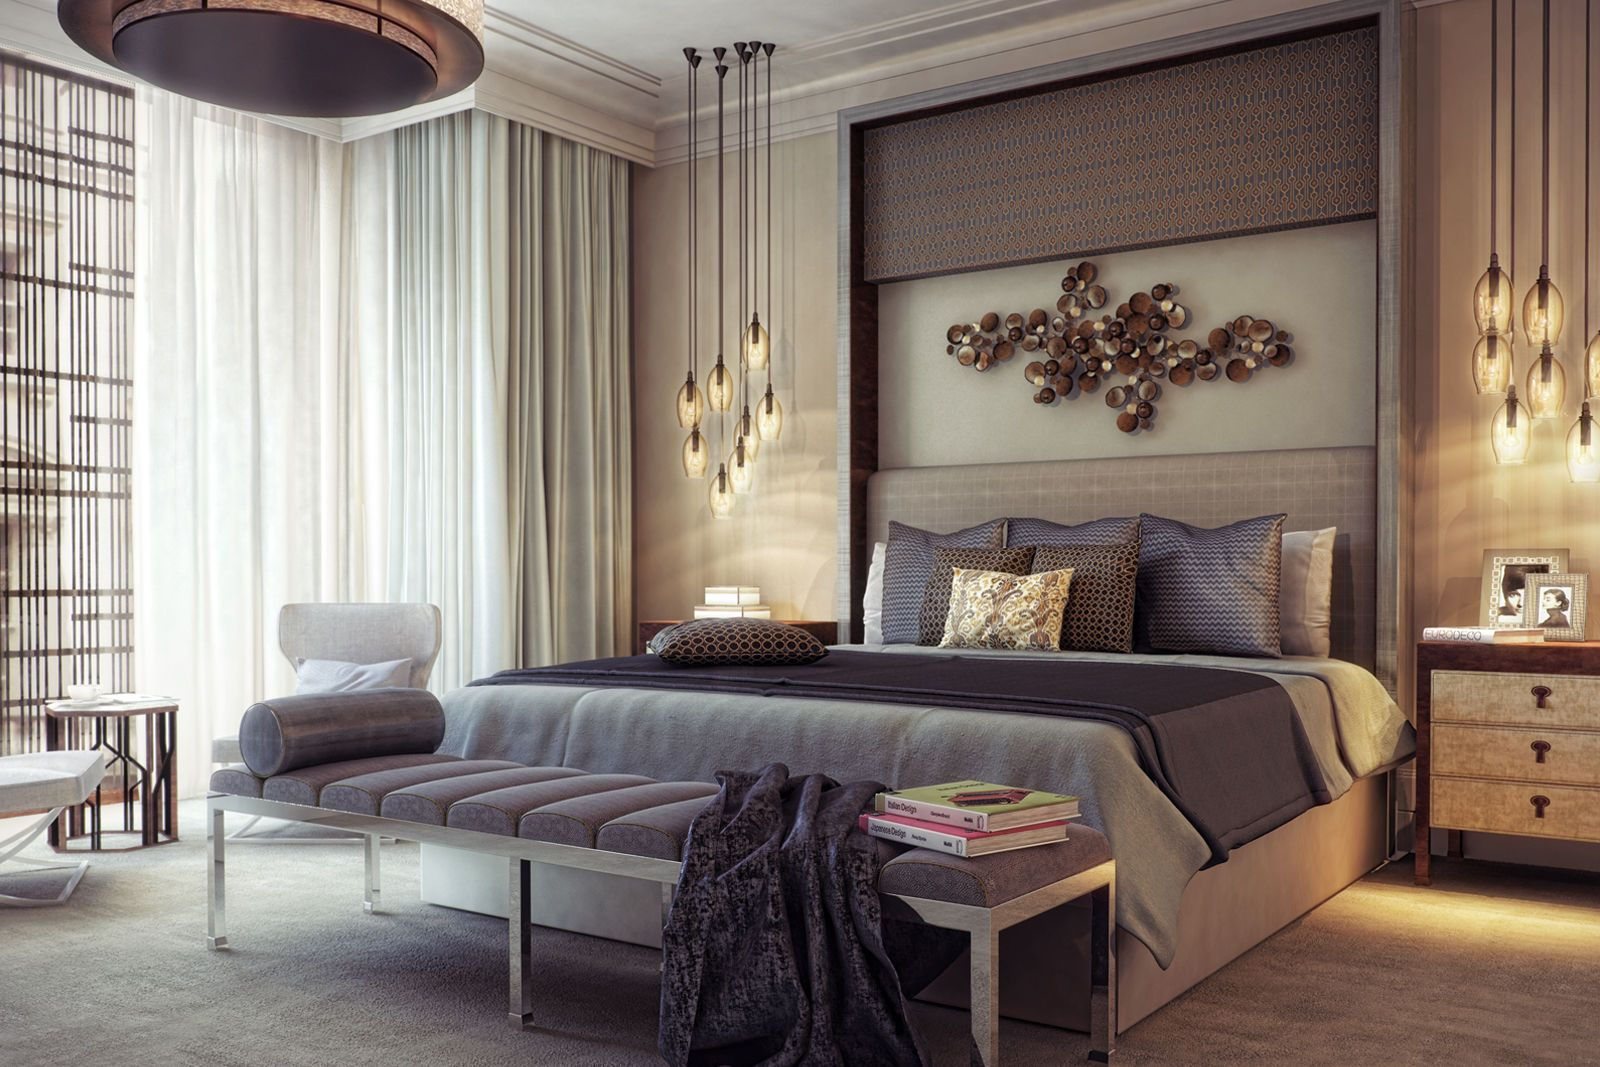 Pin By Swee Cheng On Interior Design Decoration 3 Modern